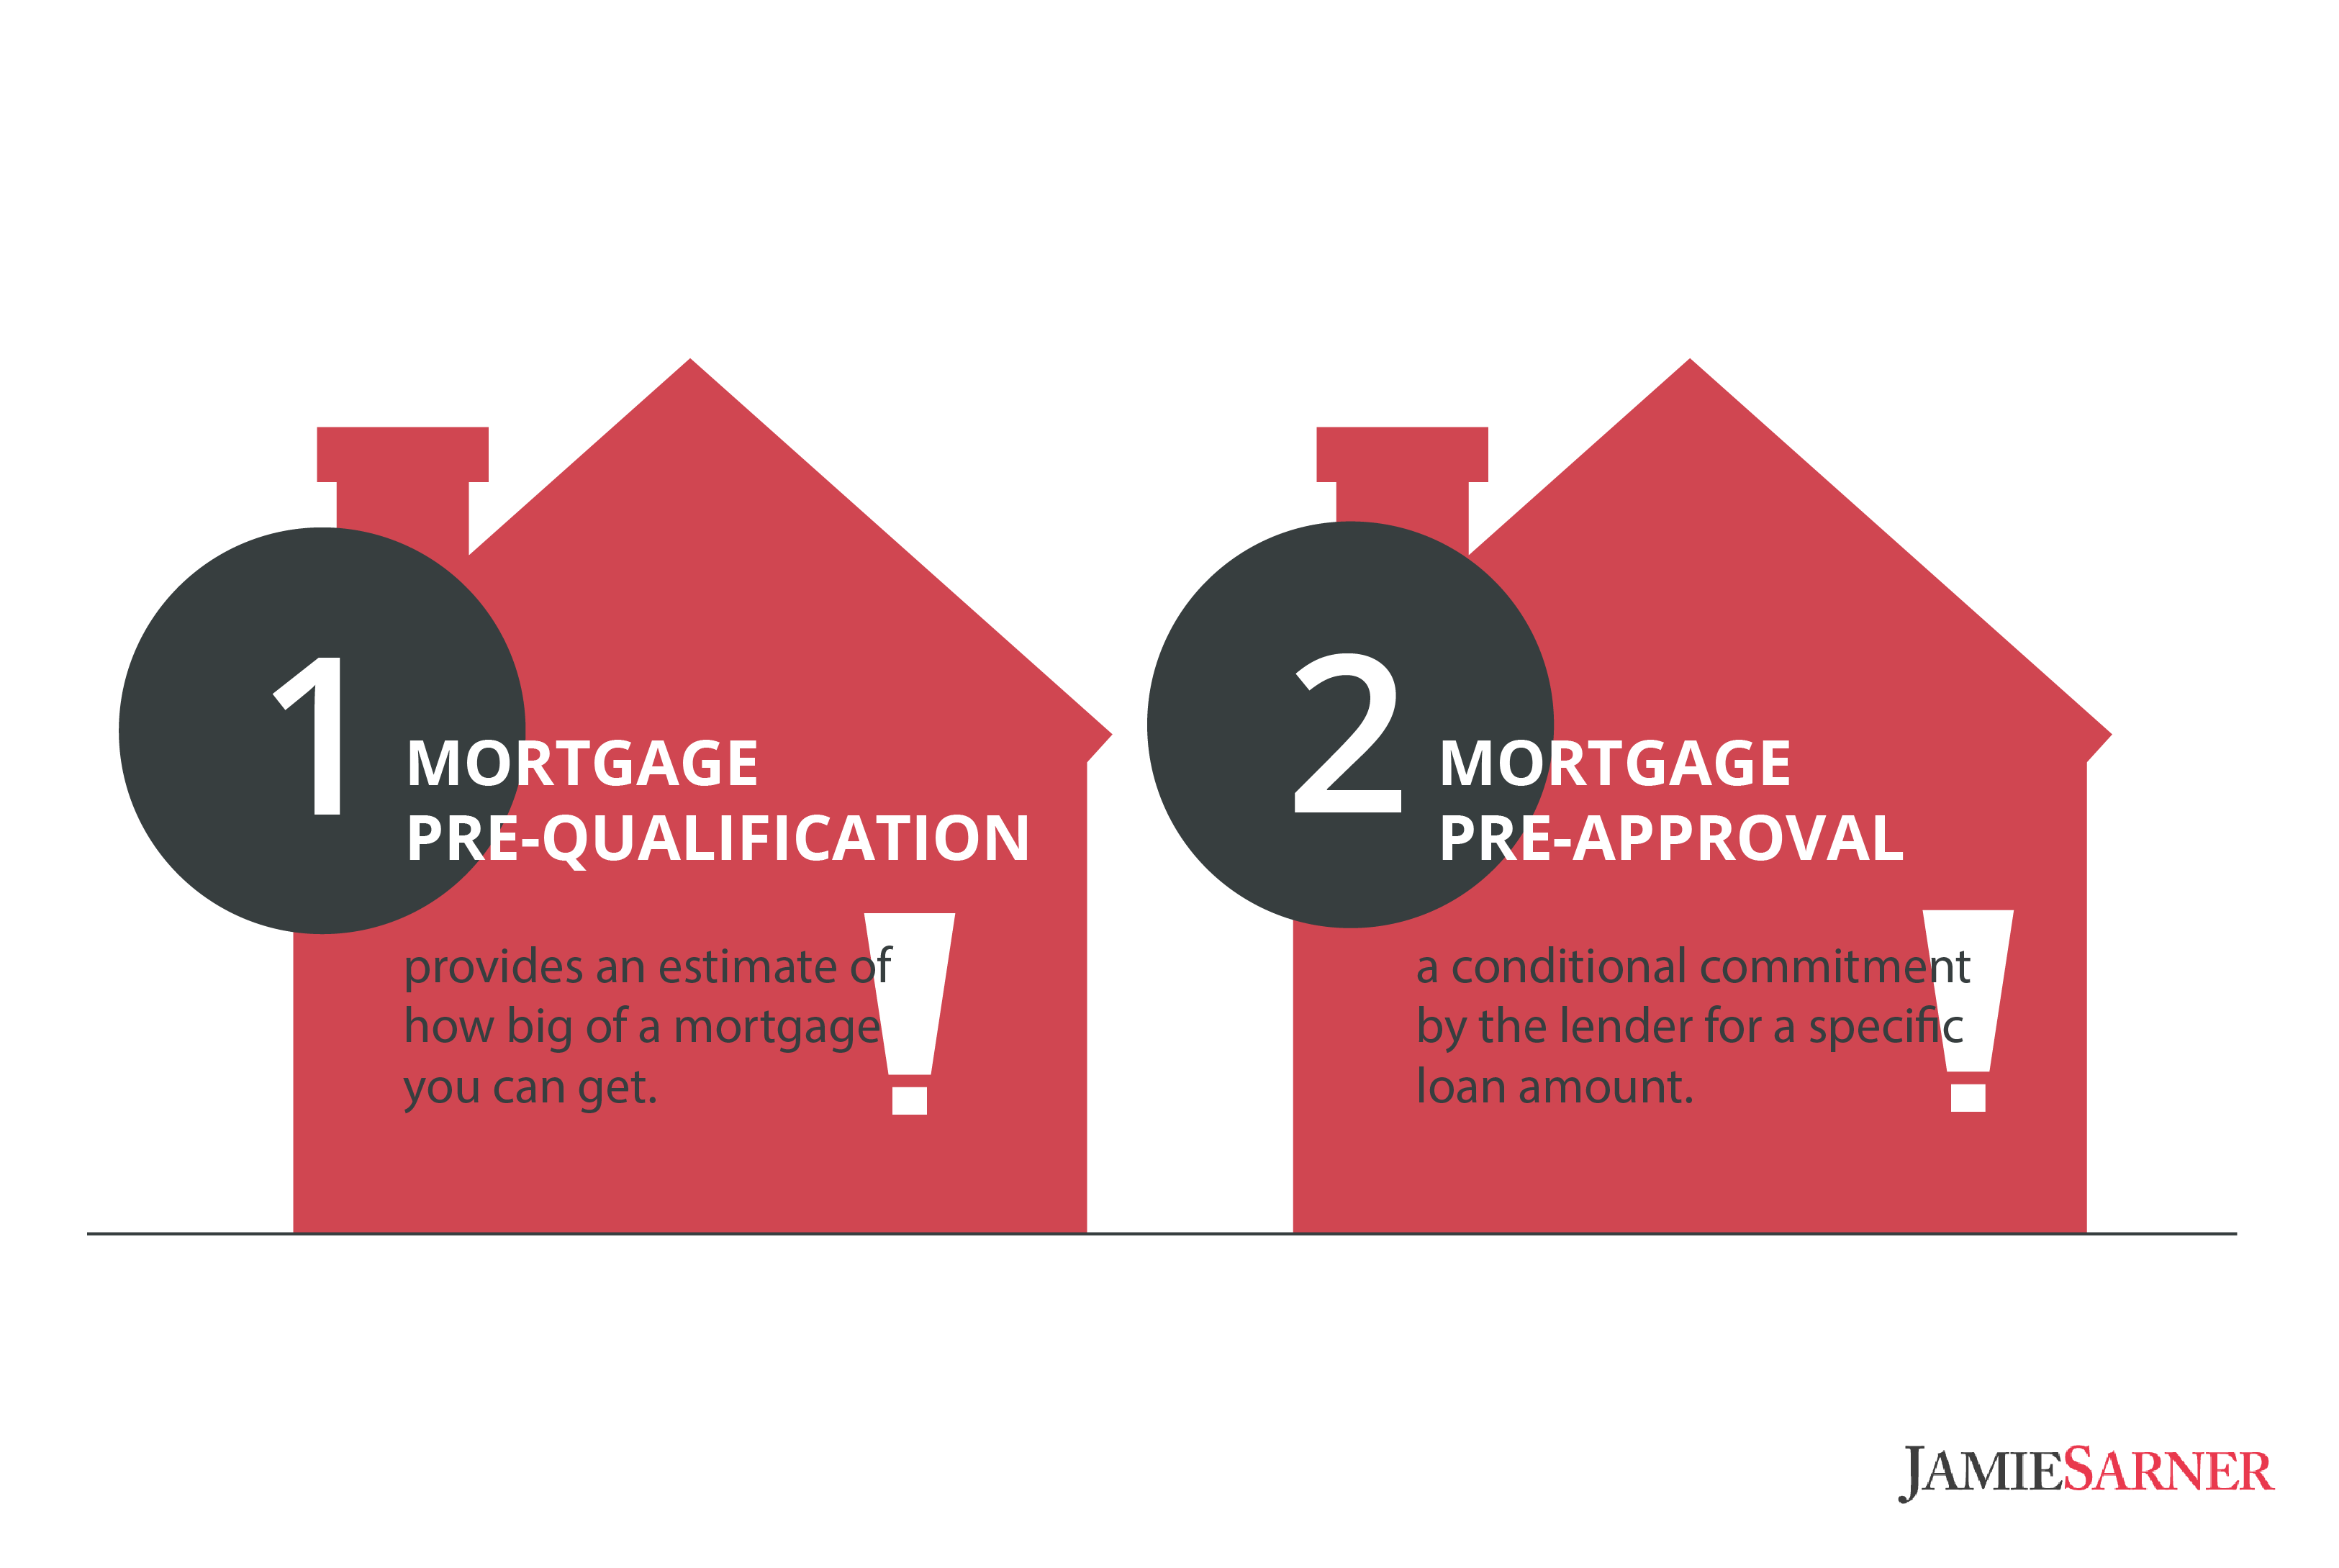 mortgage-condos-prequalification-preapproval